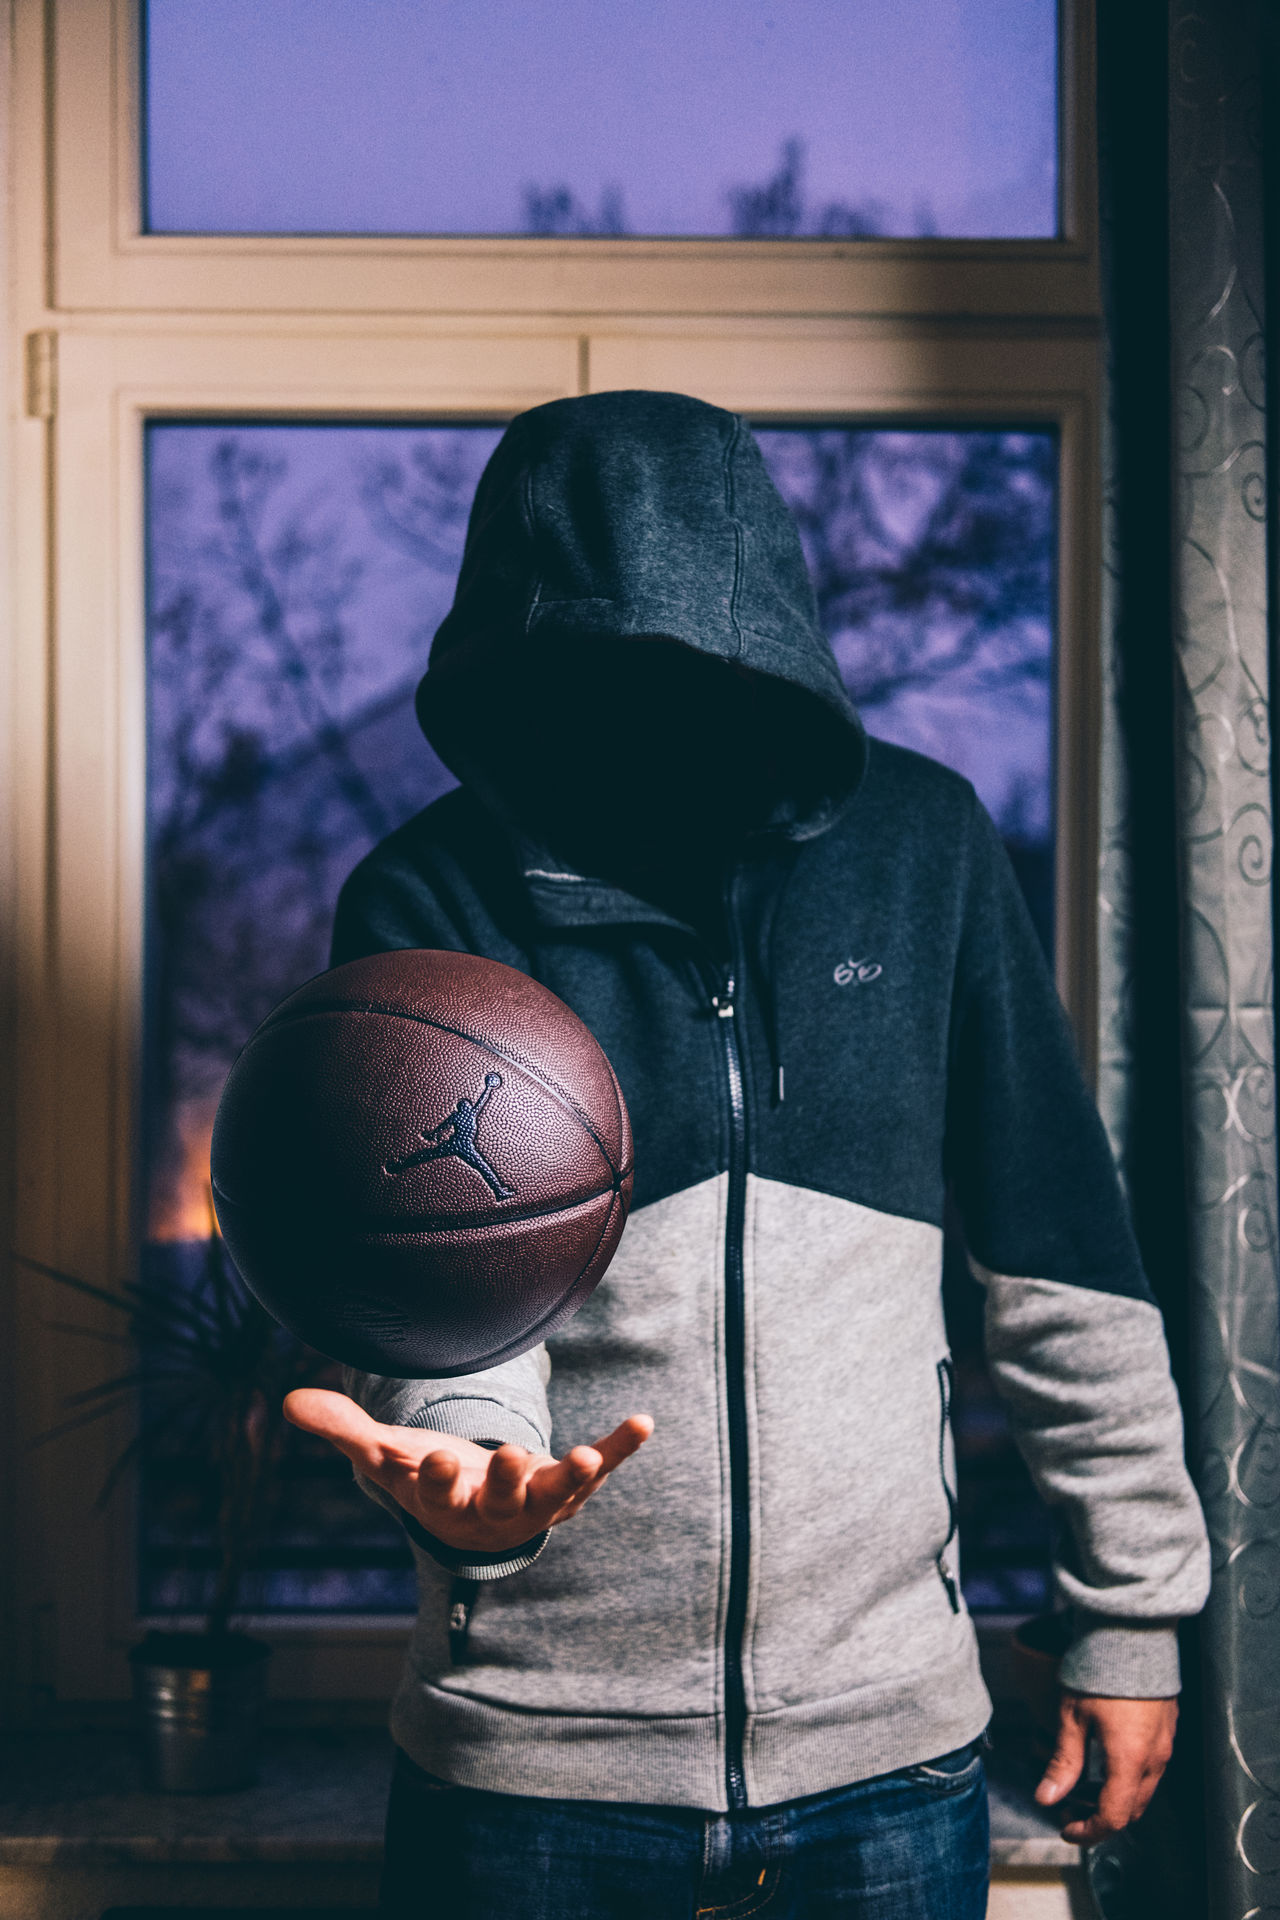 attitude Adult AirJordan  Ball Day Holding Hypebeast  Indoors  Jordan Leisure Activity Levitation Lifestyles Men One Person People Portrait Protection Real People Safety Standing VSCO